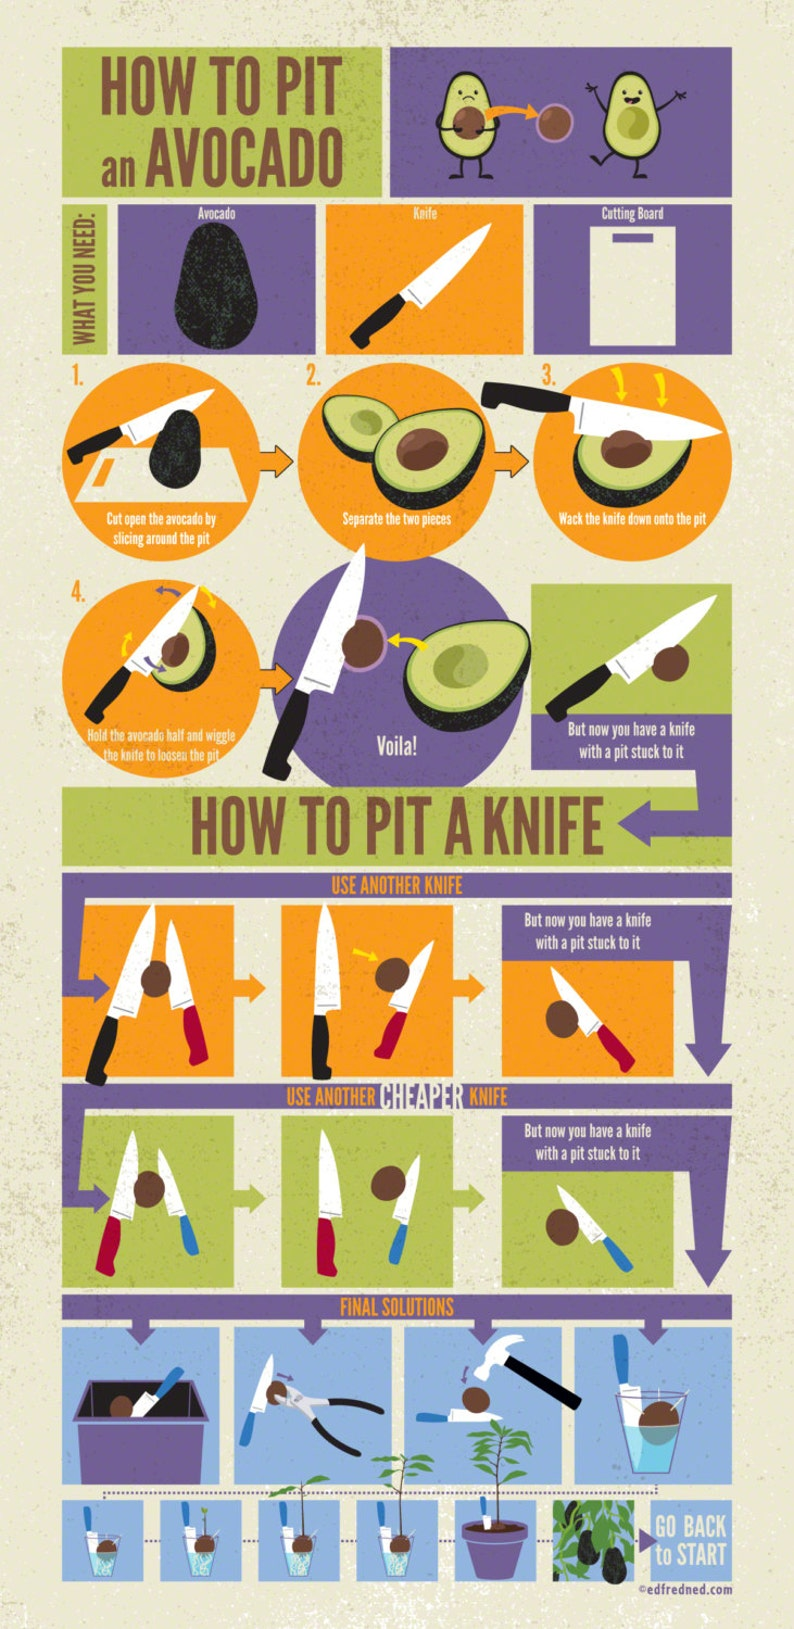 How to Pit an Avocado Wall Art for Your Kitchen image 0